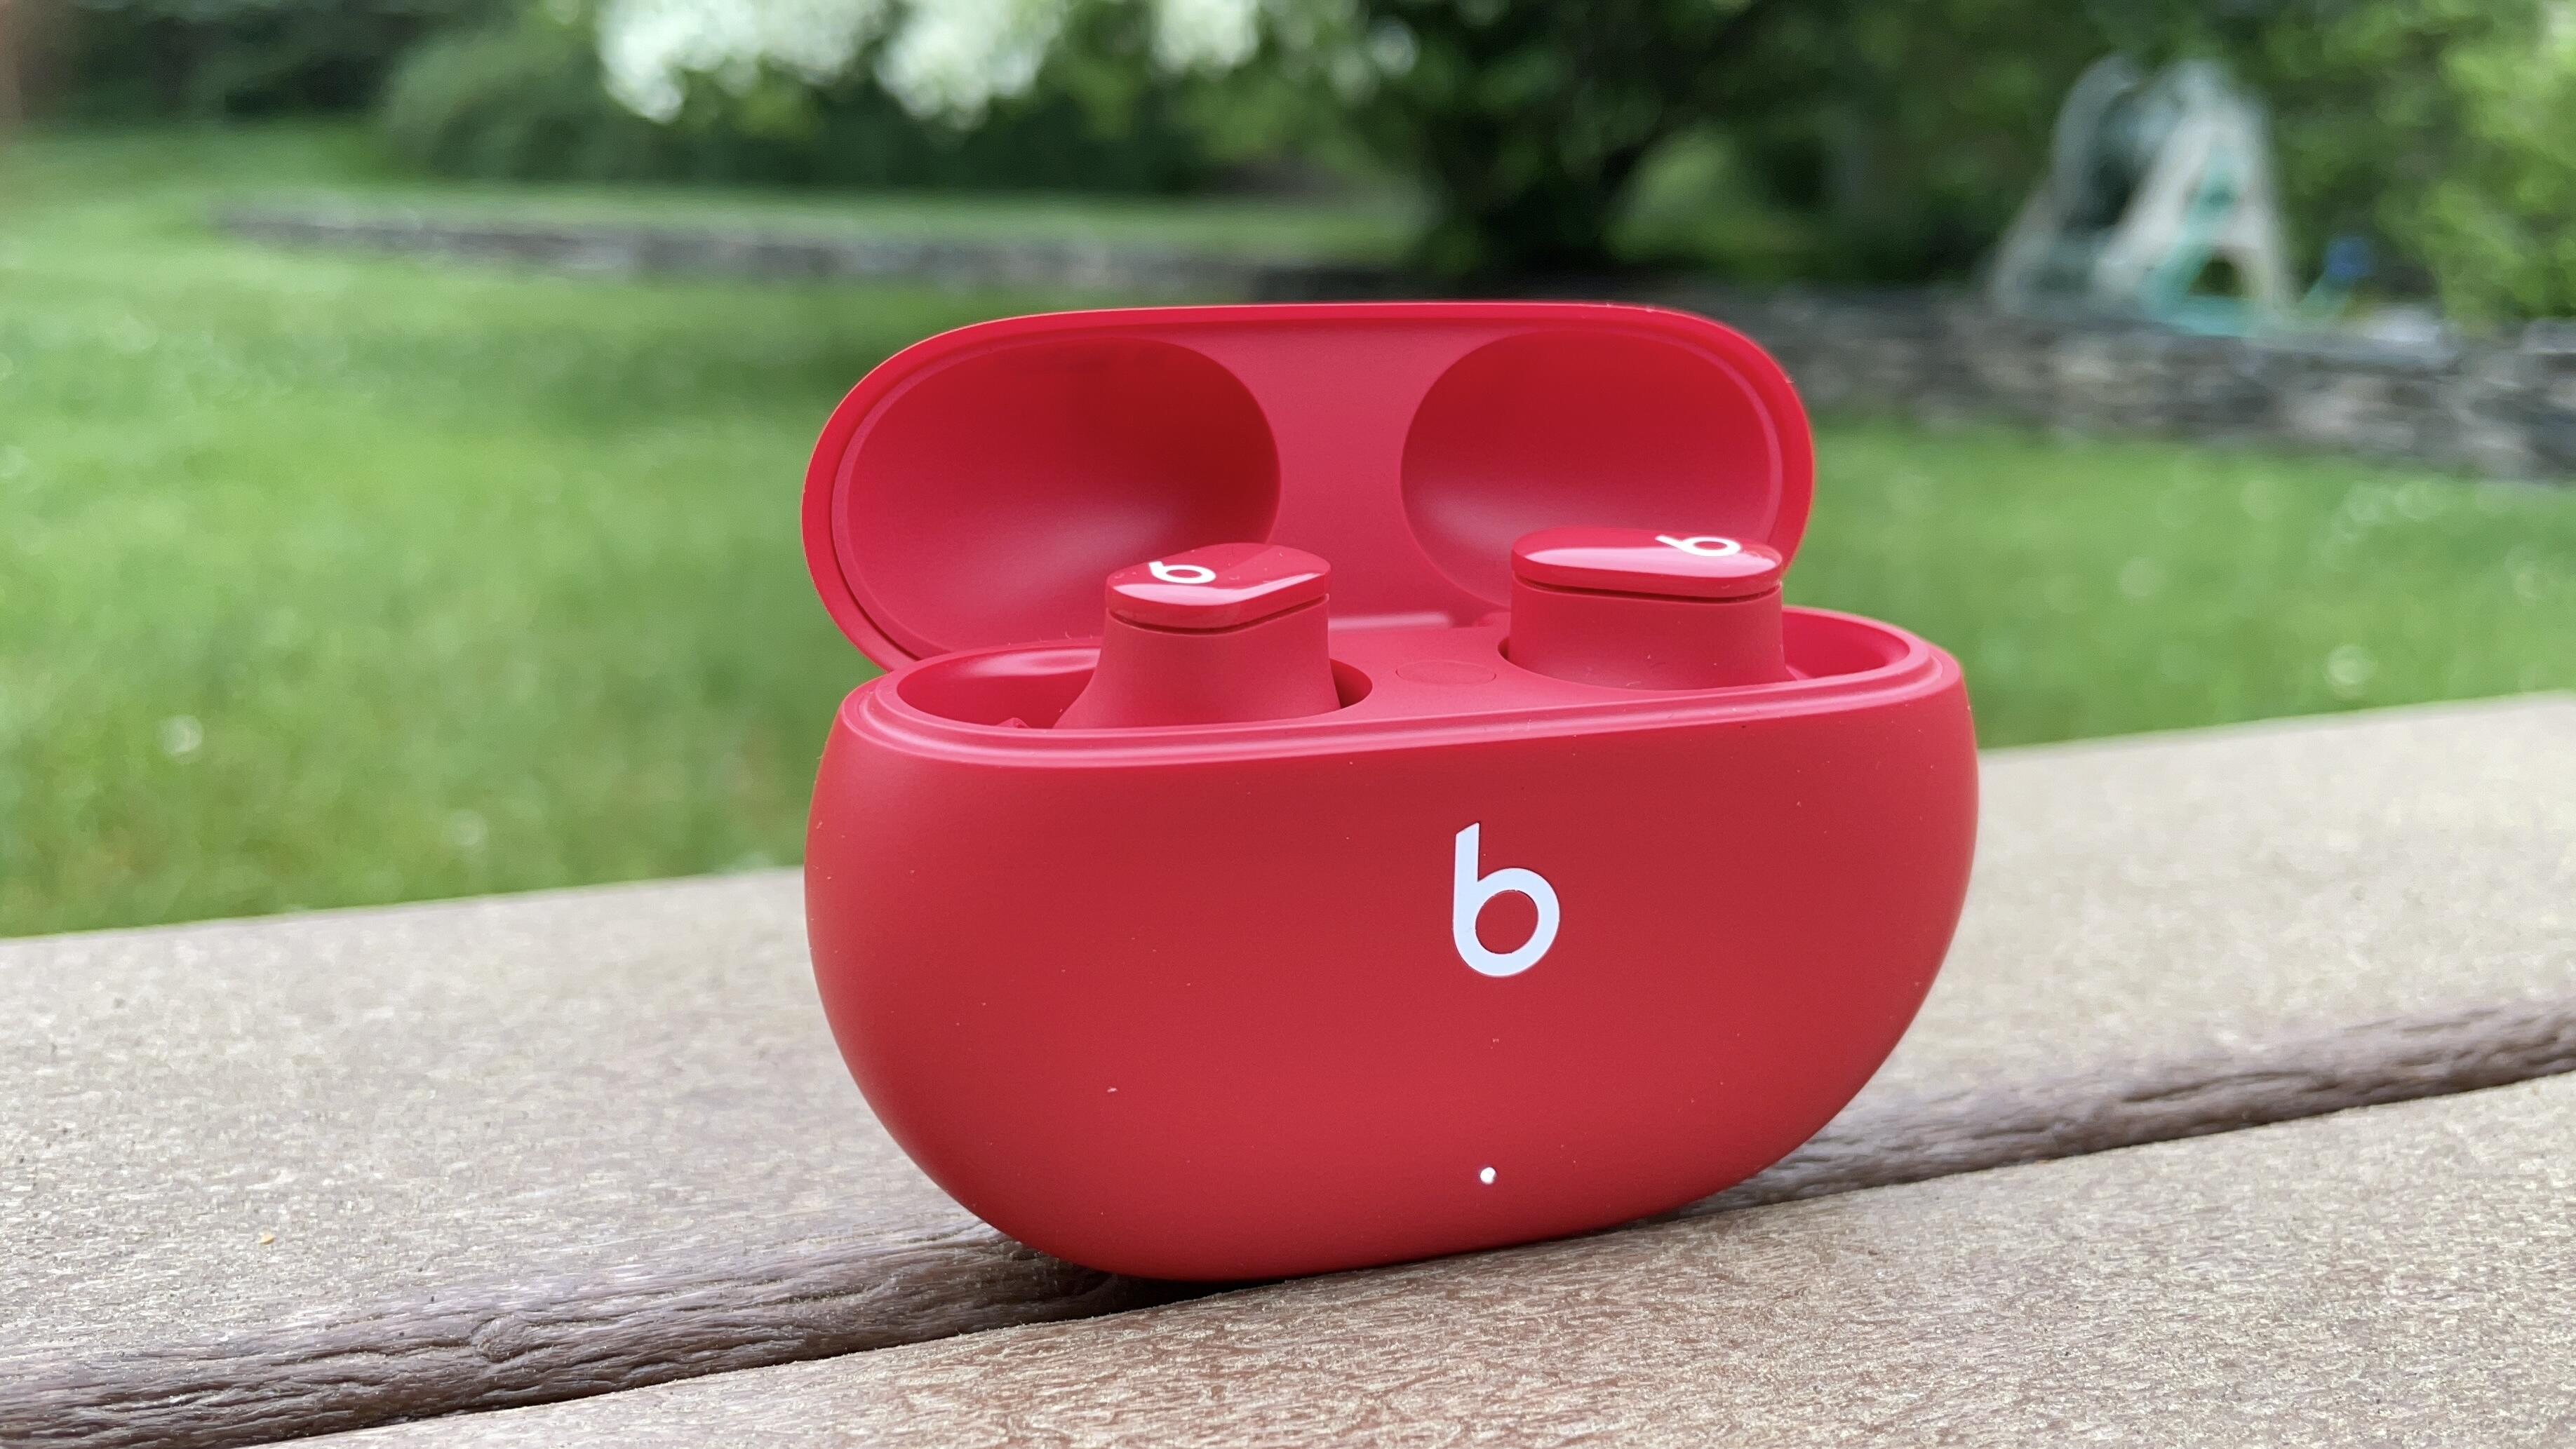 Video: Beats Studio Buds review: The stemless AirPods we've always wanted?